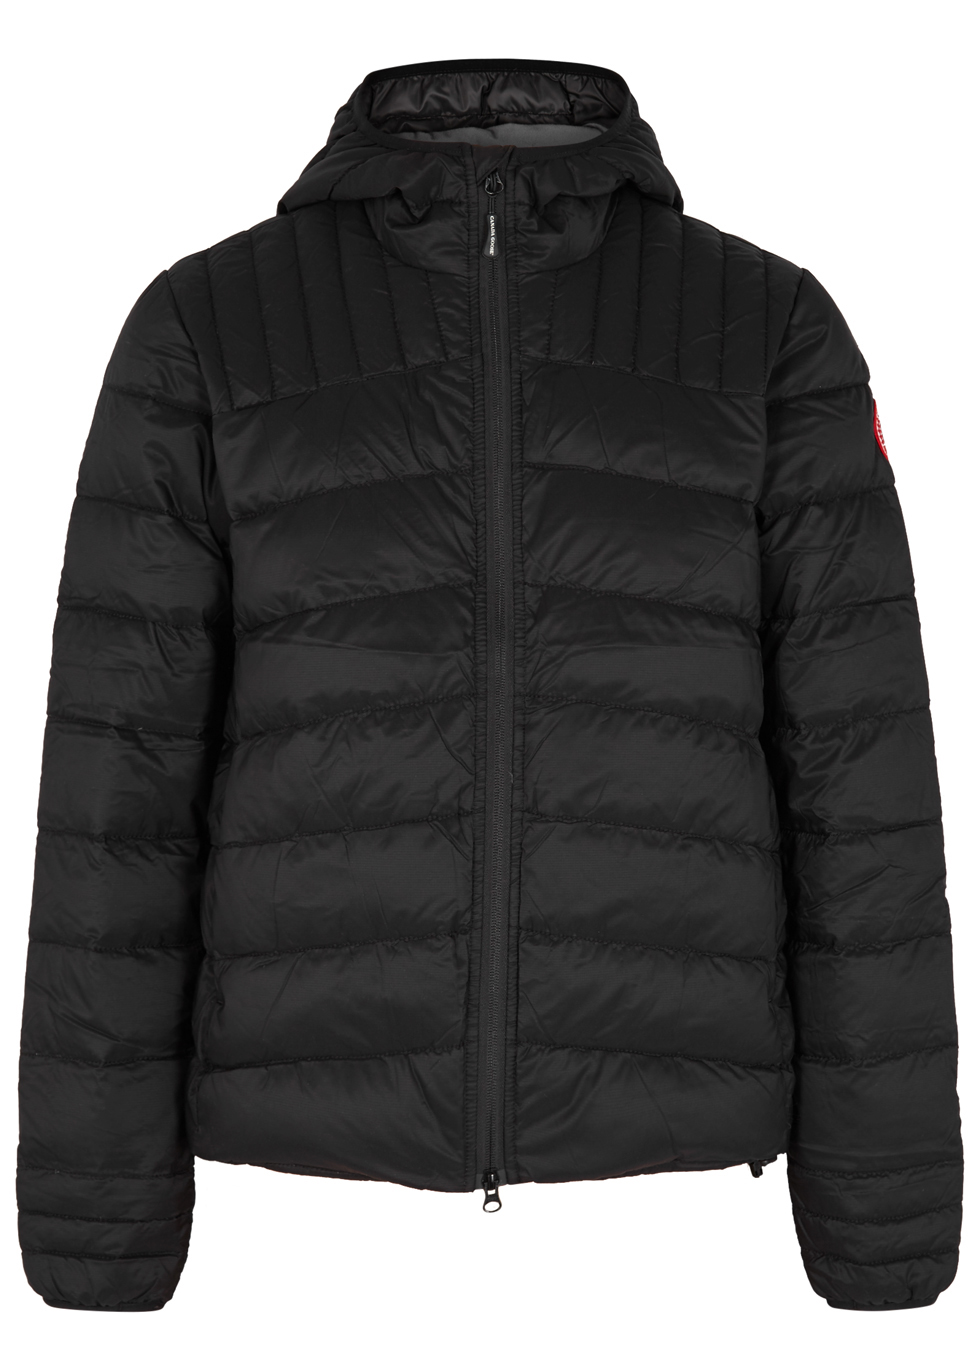 Brookvale quilted shell jacket Brookvale quilted shell jacket. Canada Goose. Brookvale quilted shell jacket